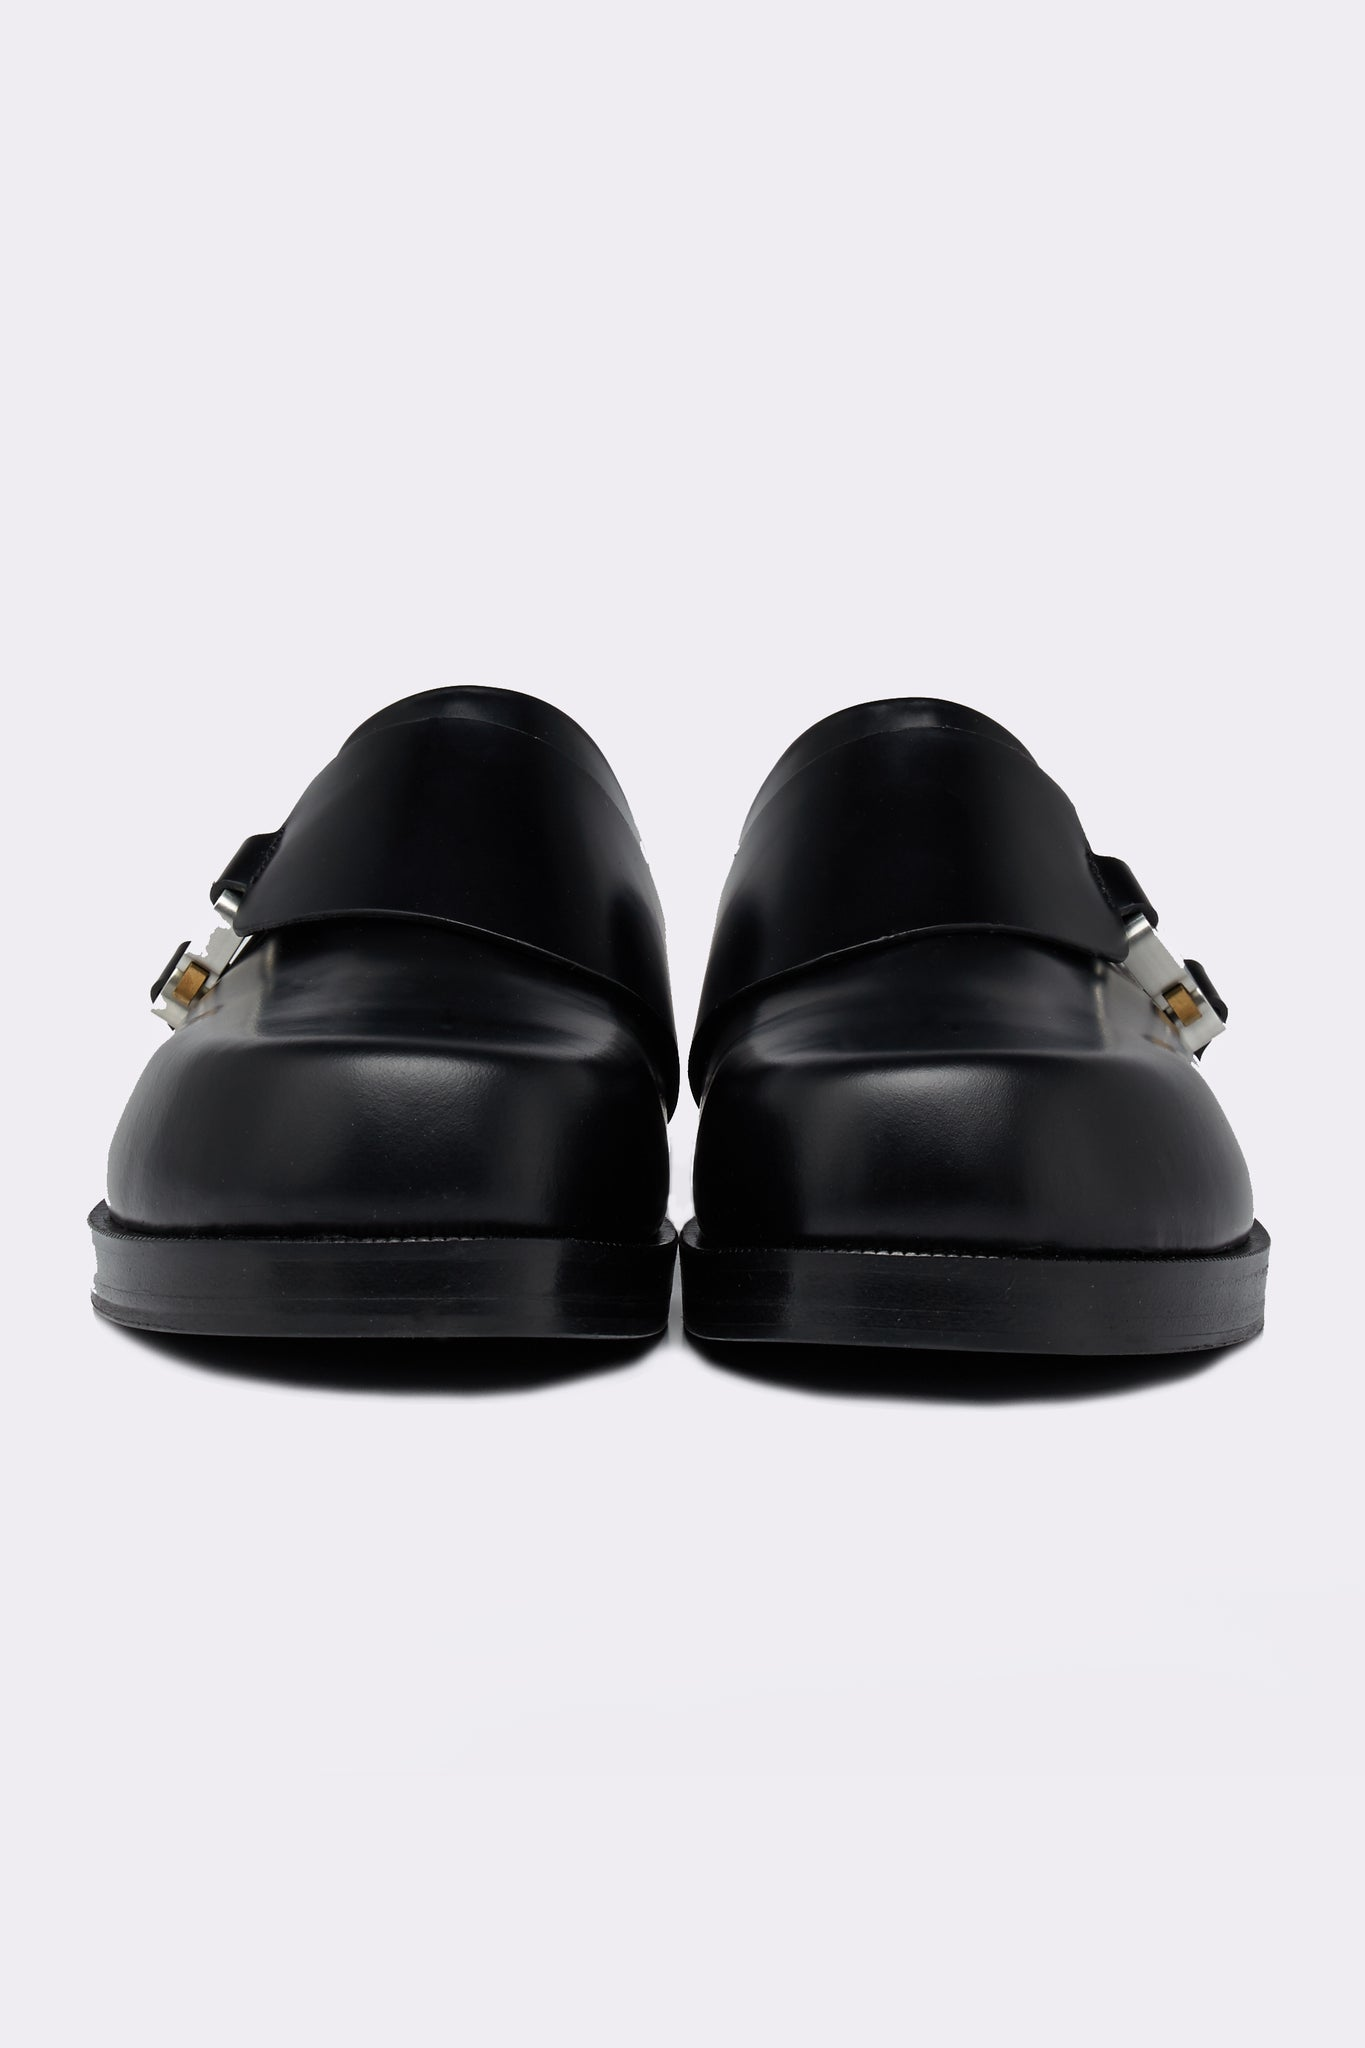 Formal Clog W/ Buckle Black